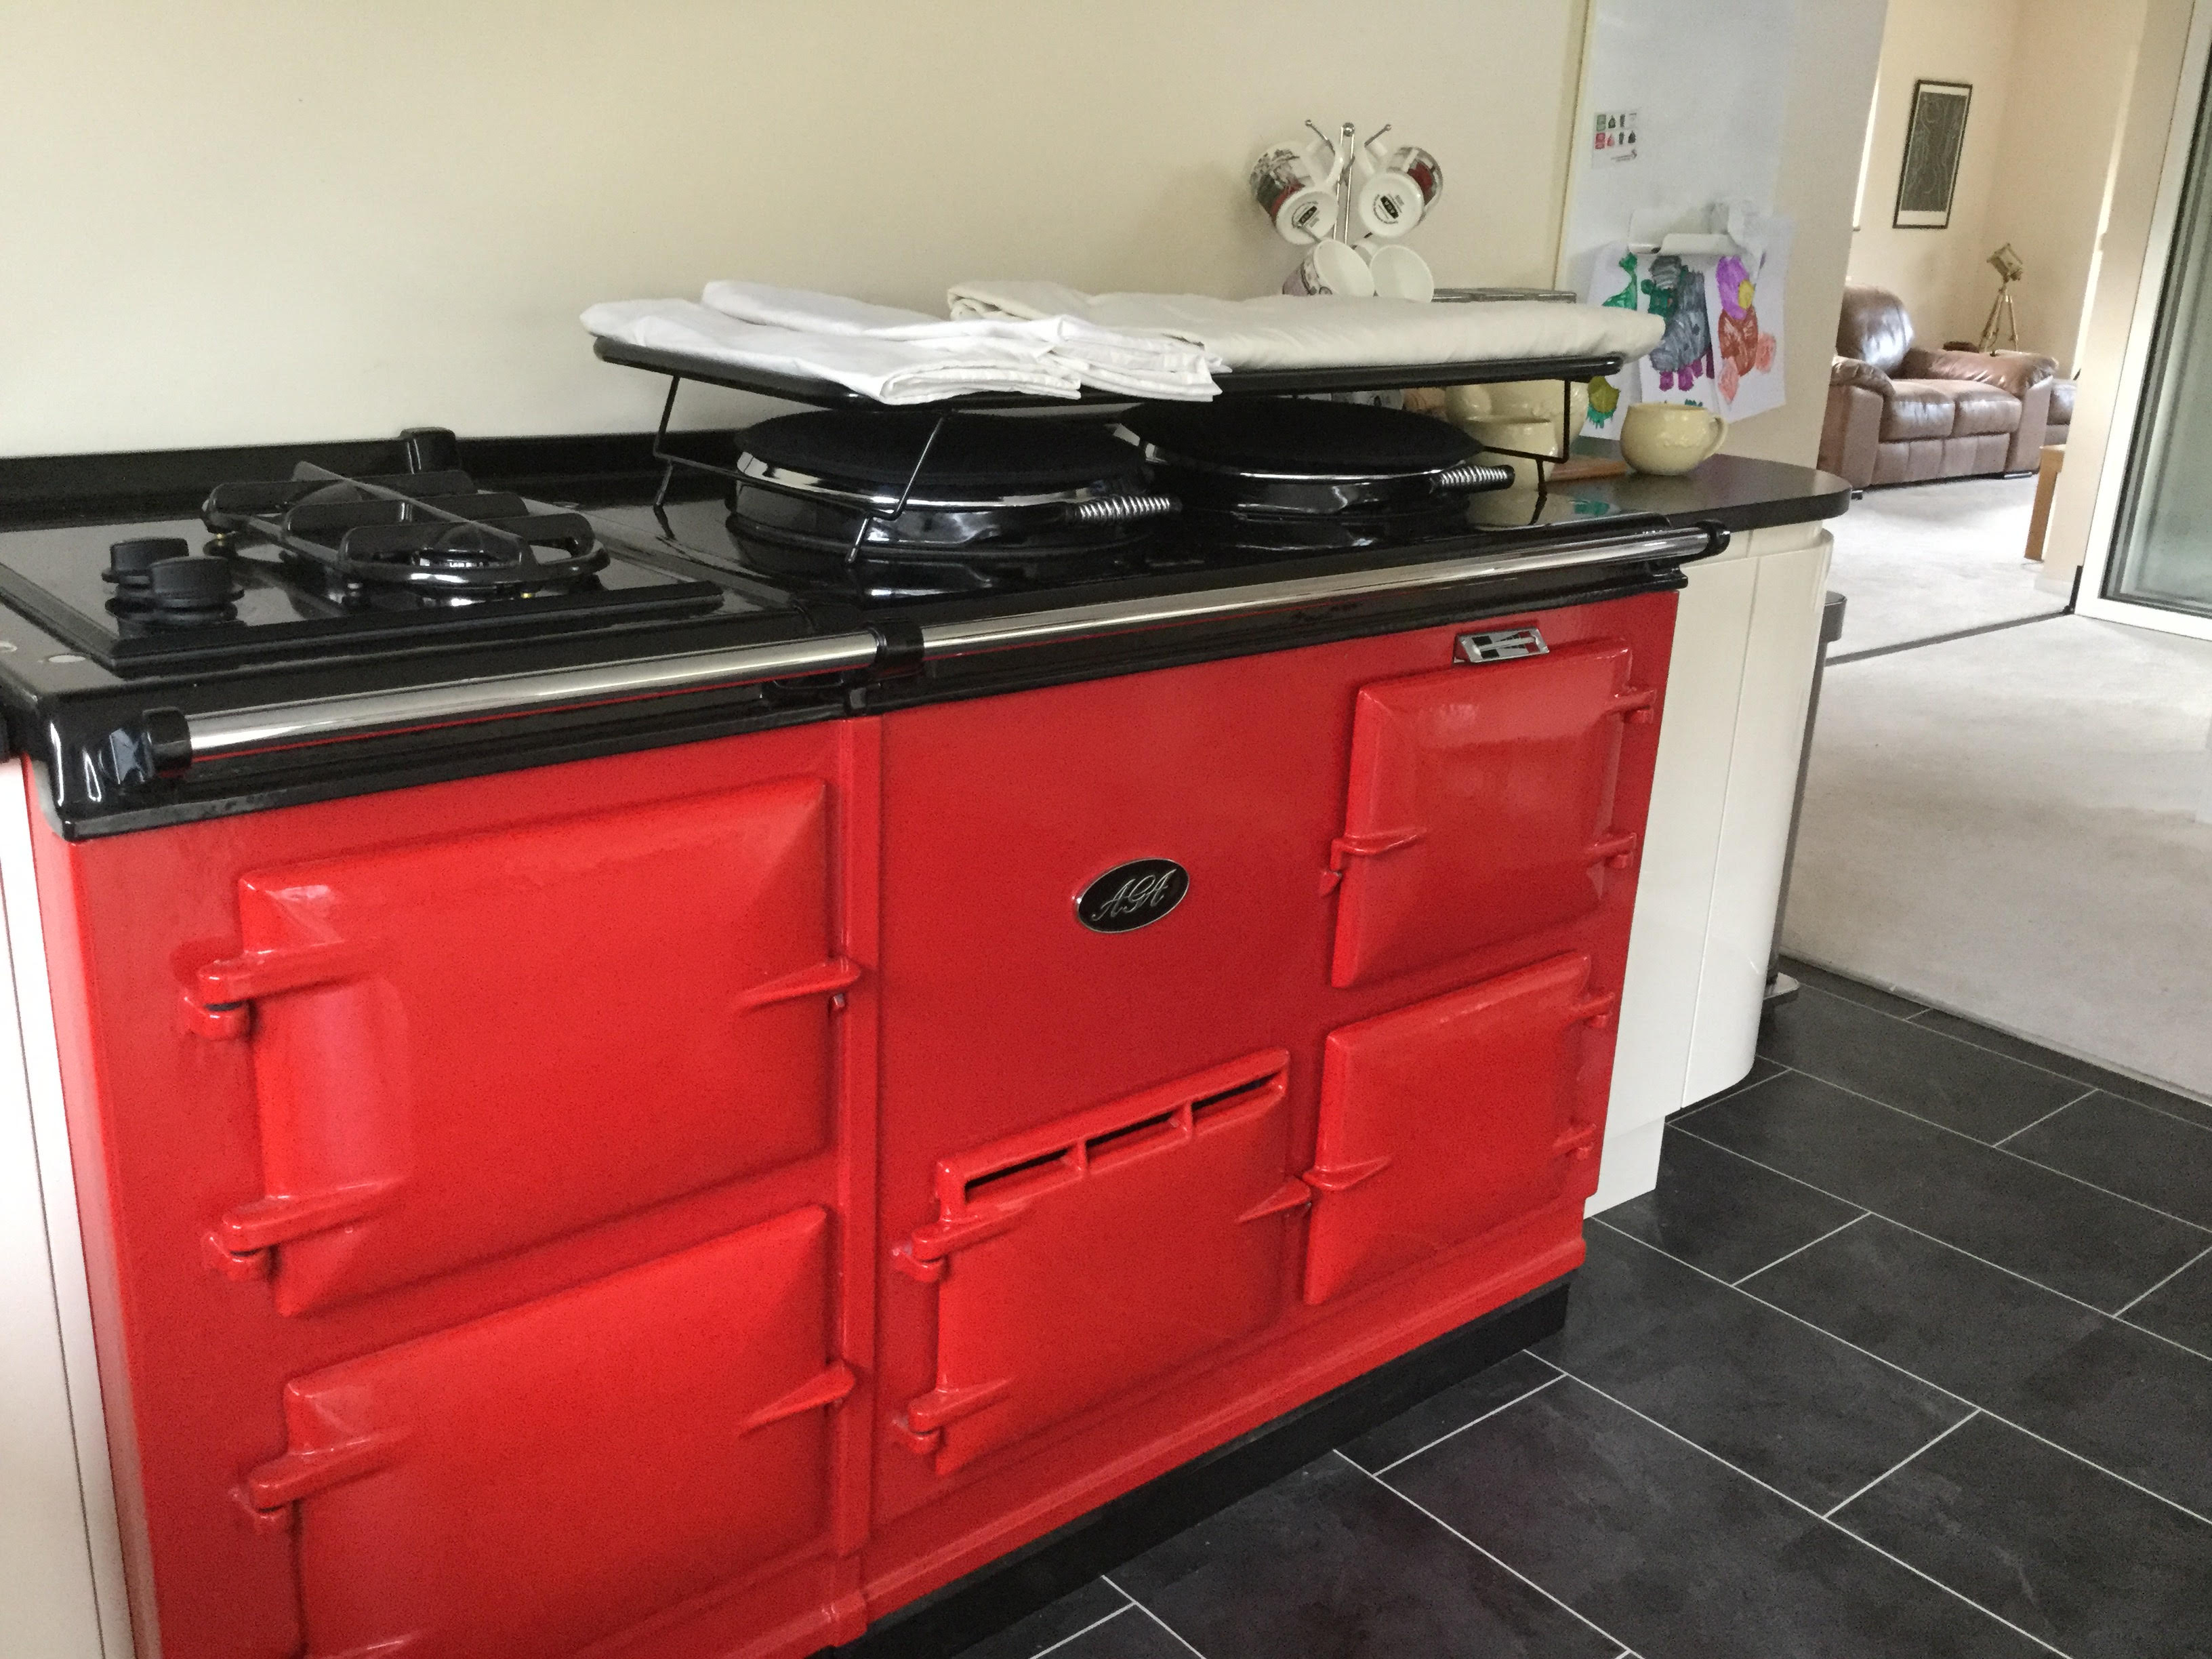 Red Aga with drying airer